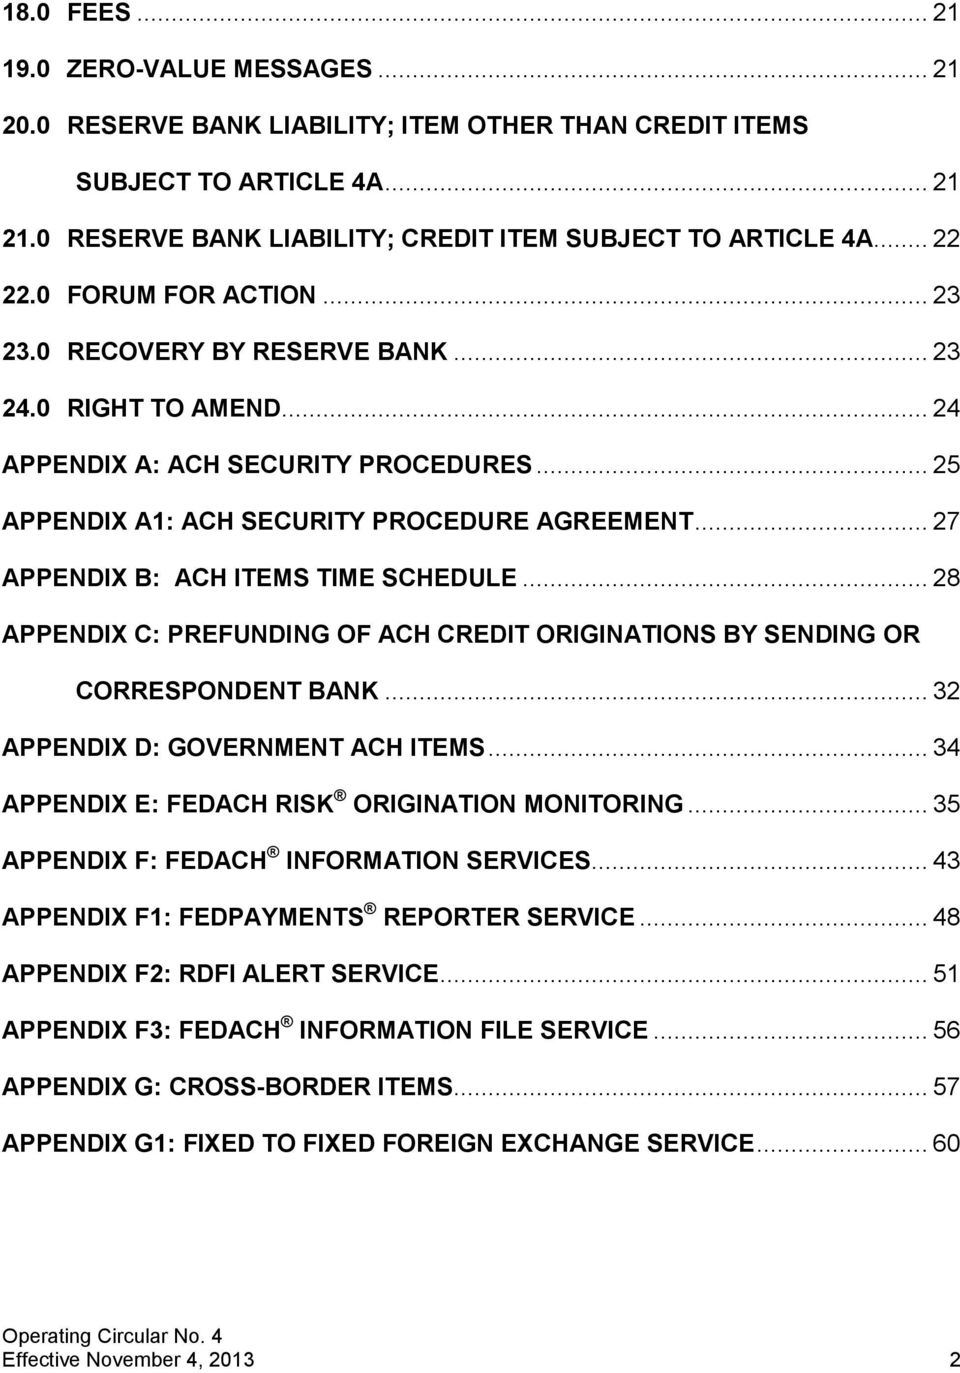 .. 27 APPENDIX B: ACH ITEMS TIME SCHEDULE... 28 APPENDIX C: PREFUNDING OF ACH CREDIT ORIGINATIONS BY SENDING OR CORRESPONDENT BANK... 32 APPENDIX D: GOVERNMENT ACH ITEMS.